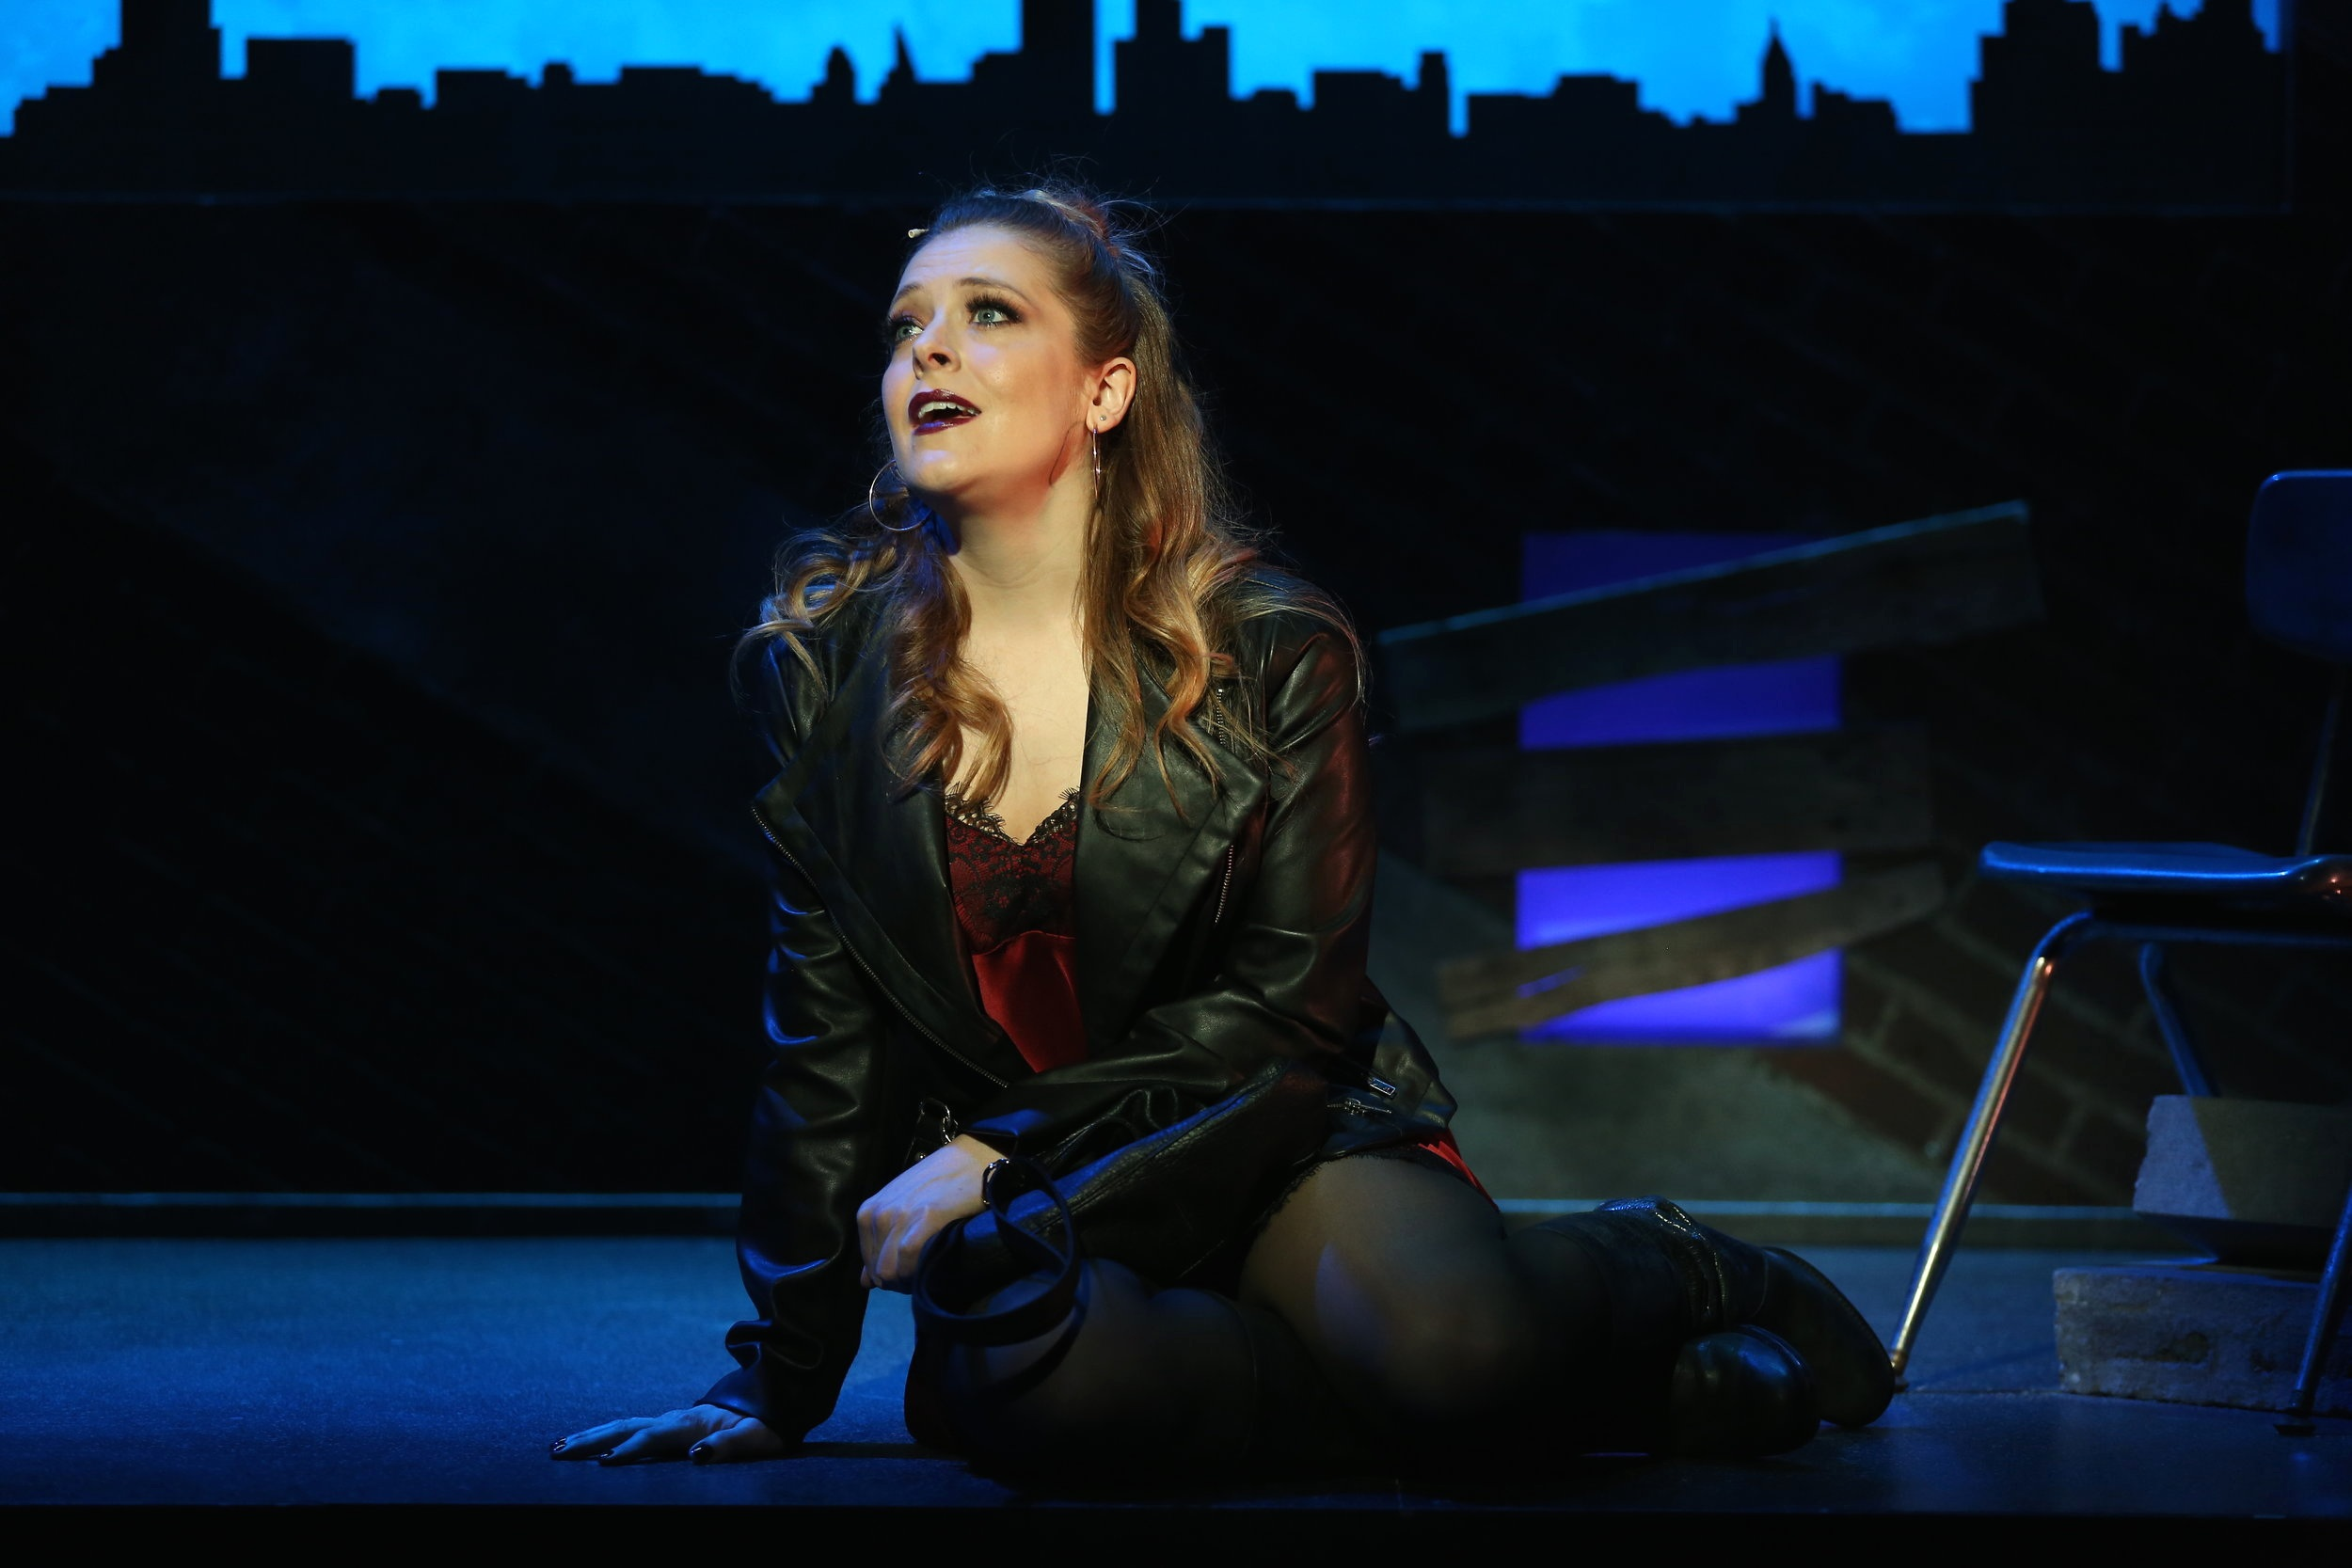 Emily Afton in Midnight Street Off-Broadway